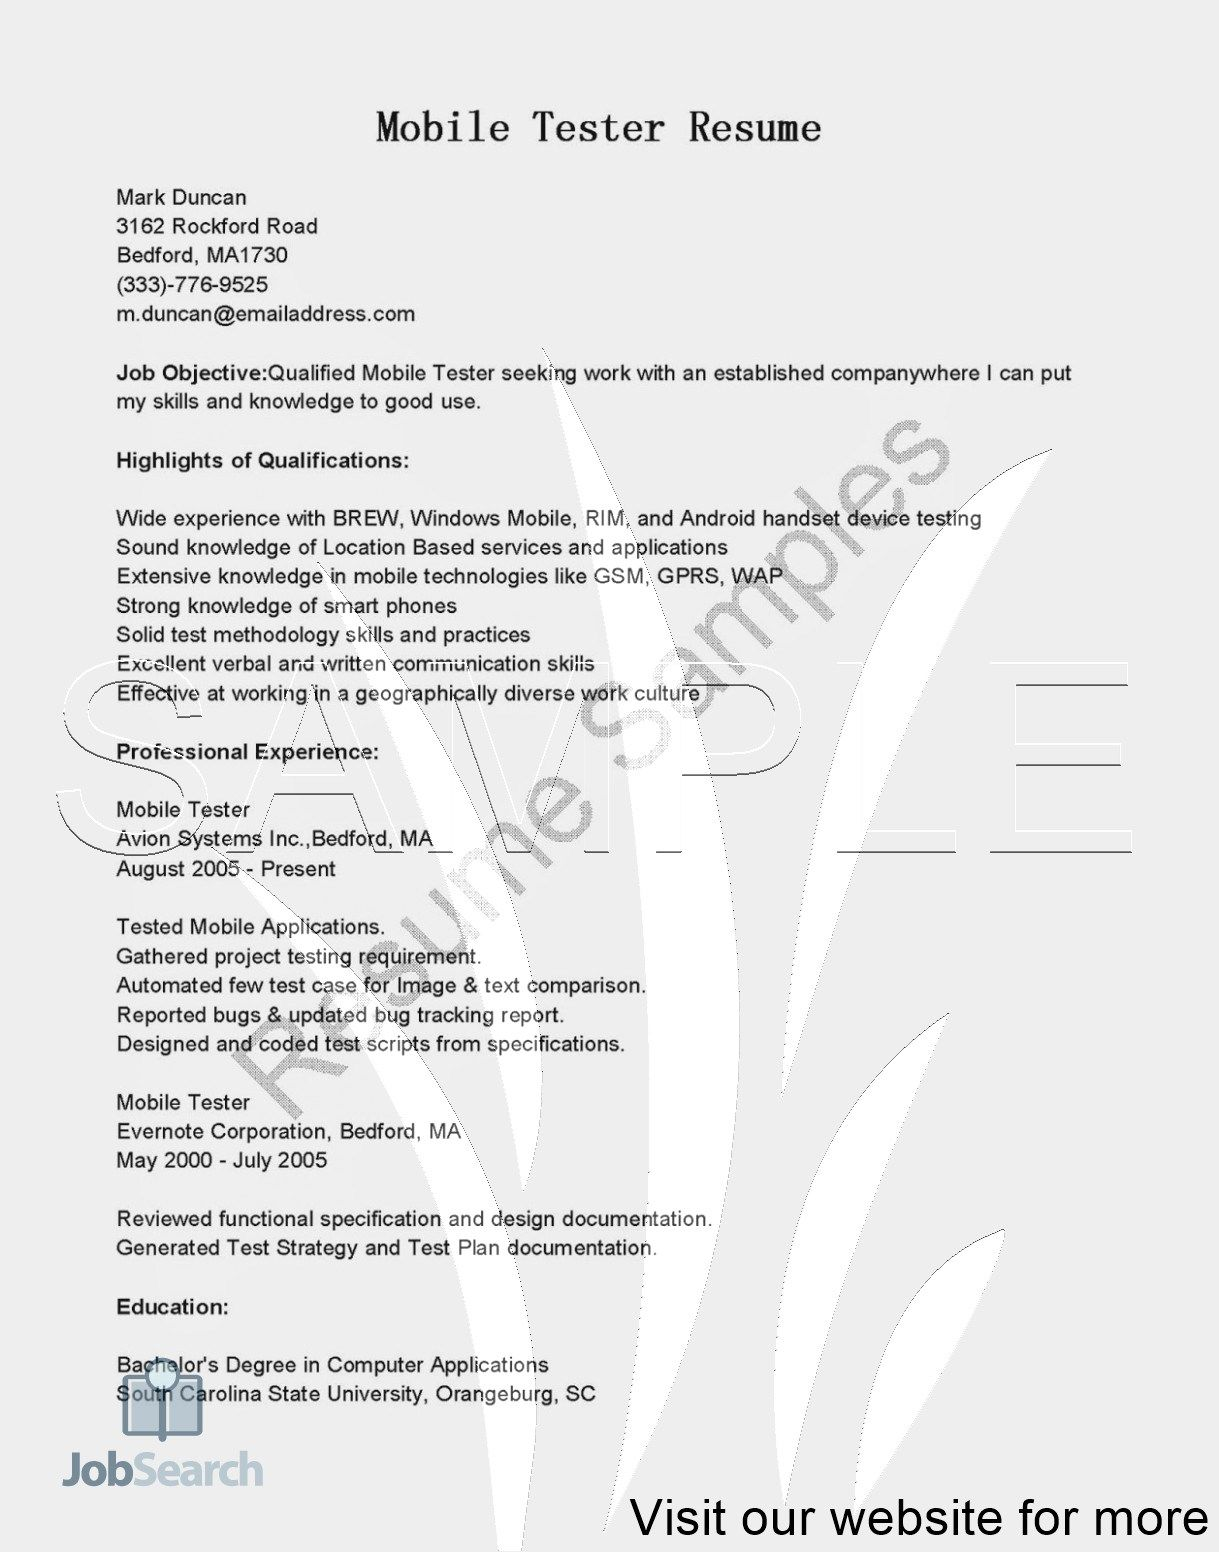 Resume Template Free Downloadable Resume Template Free Job Resume Template Resume Design Template